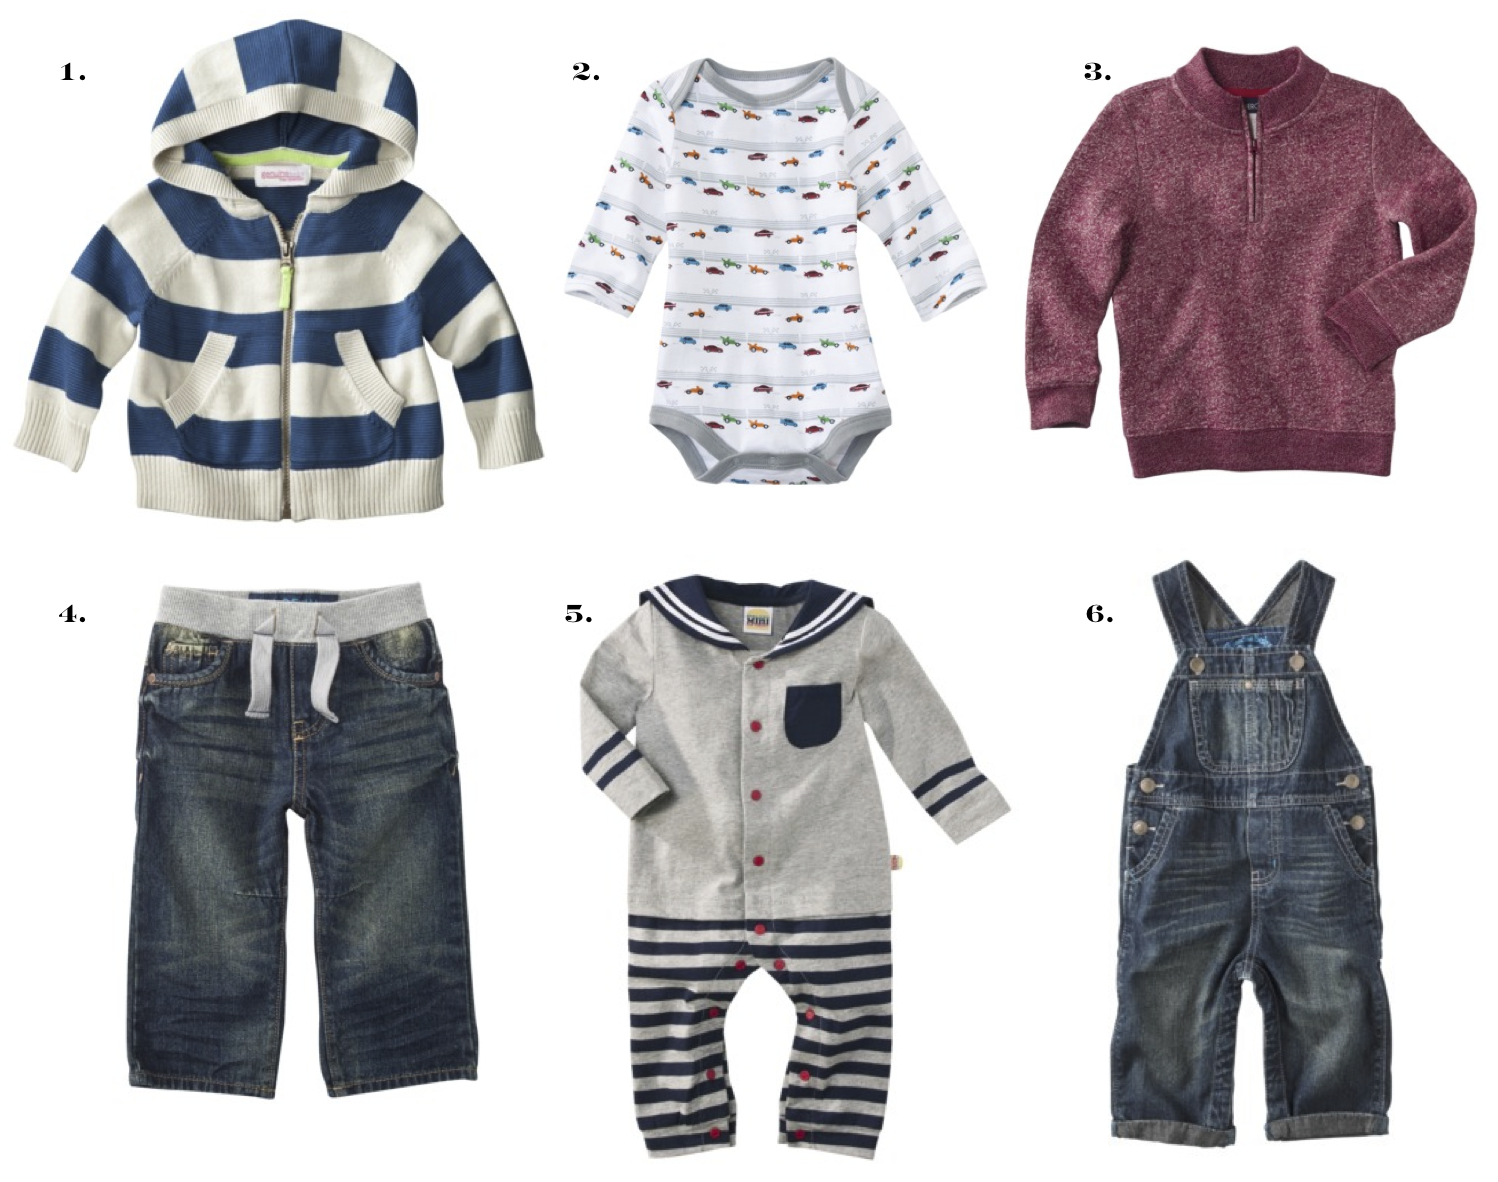 Shop boys clothes at Gymboree for great deals on a wide selection of styles. Find deals on boys shirts, jeans, sweaters and more.